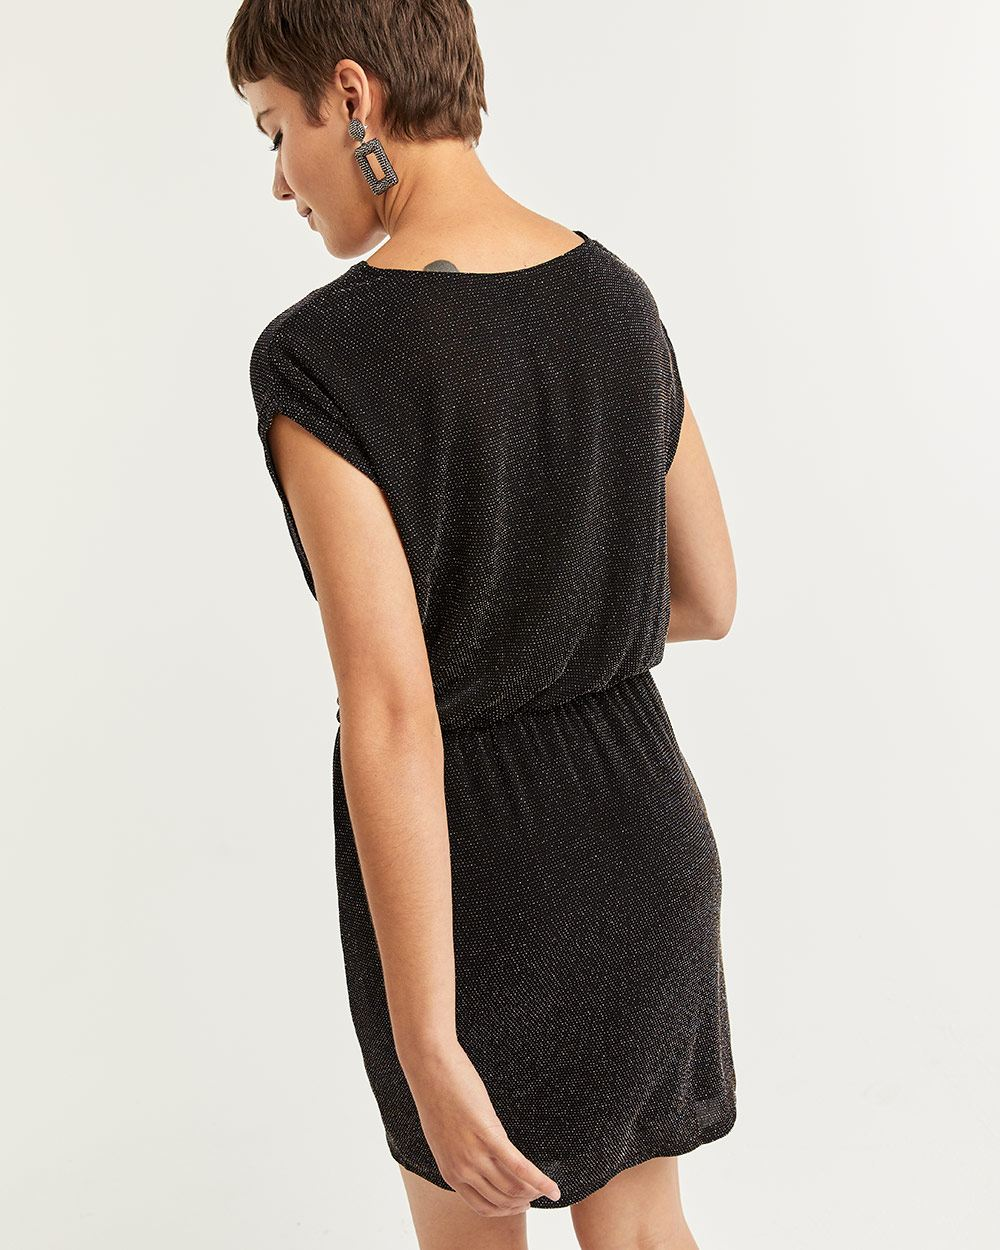 Short Sleeve Shimmer Dresse with Draped Neck